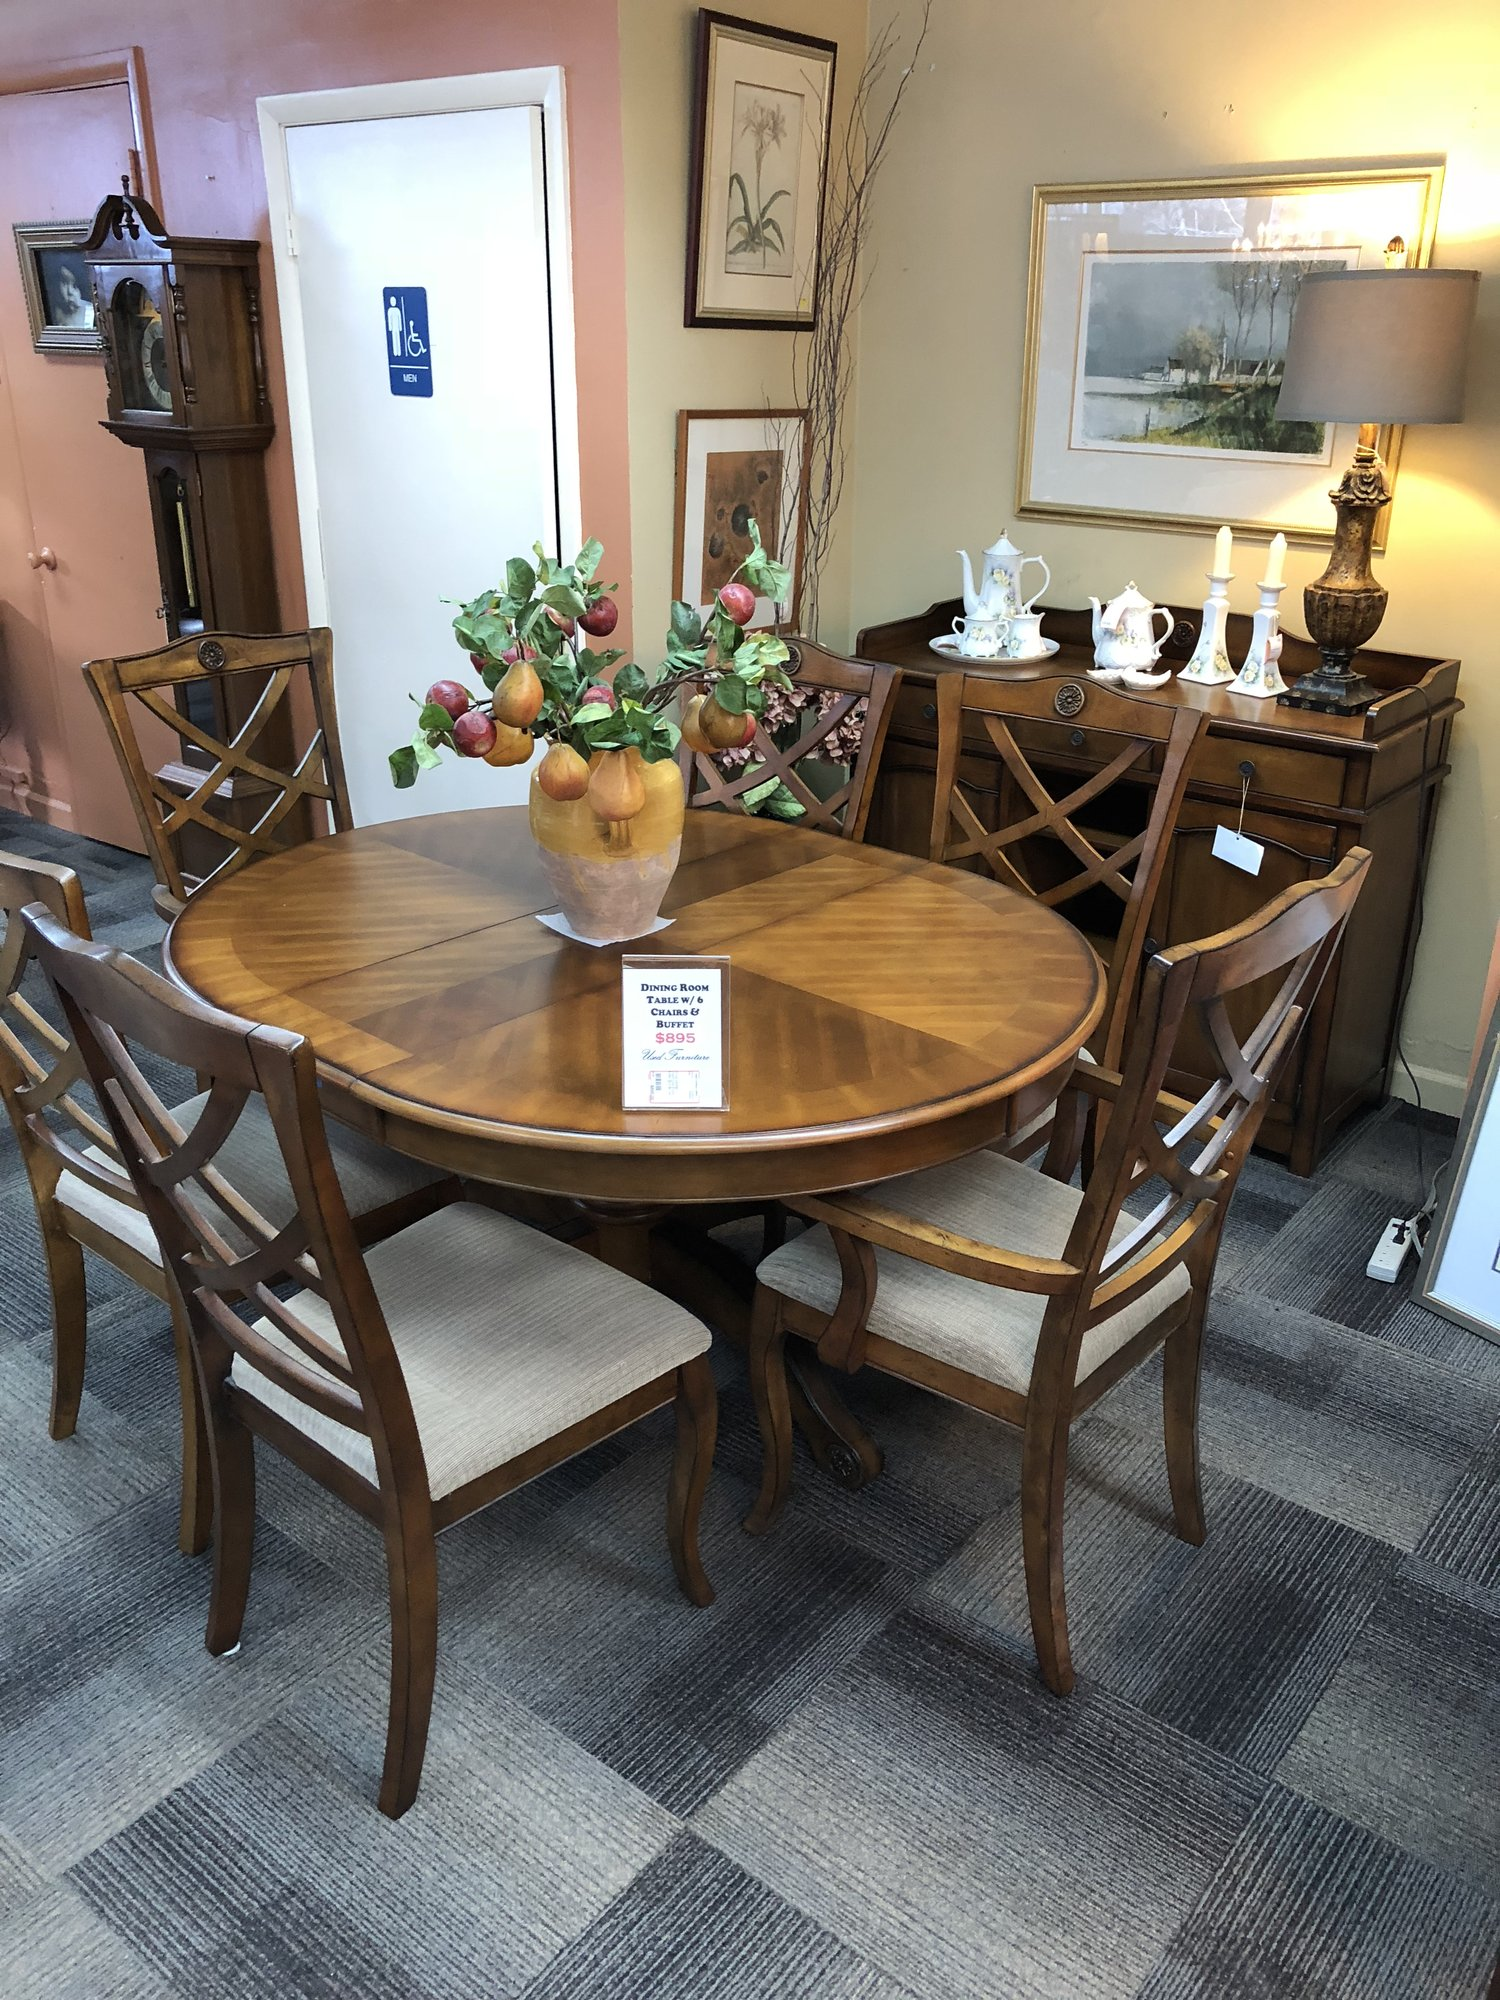 1 25765 Dining Table W/ 6 Chairs, Leaf, Pads, Buffet (